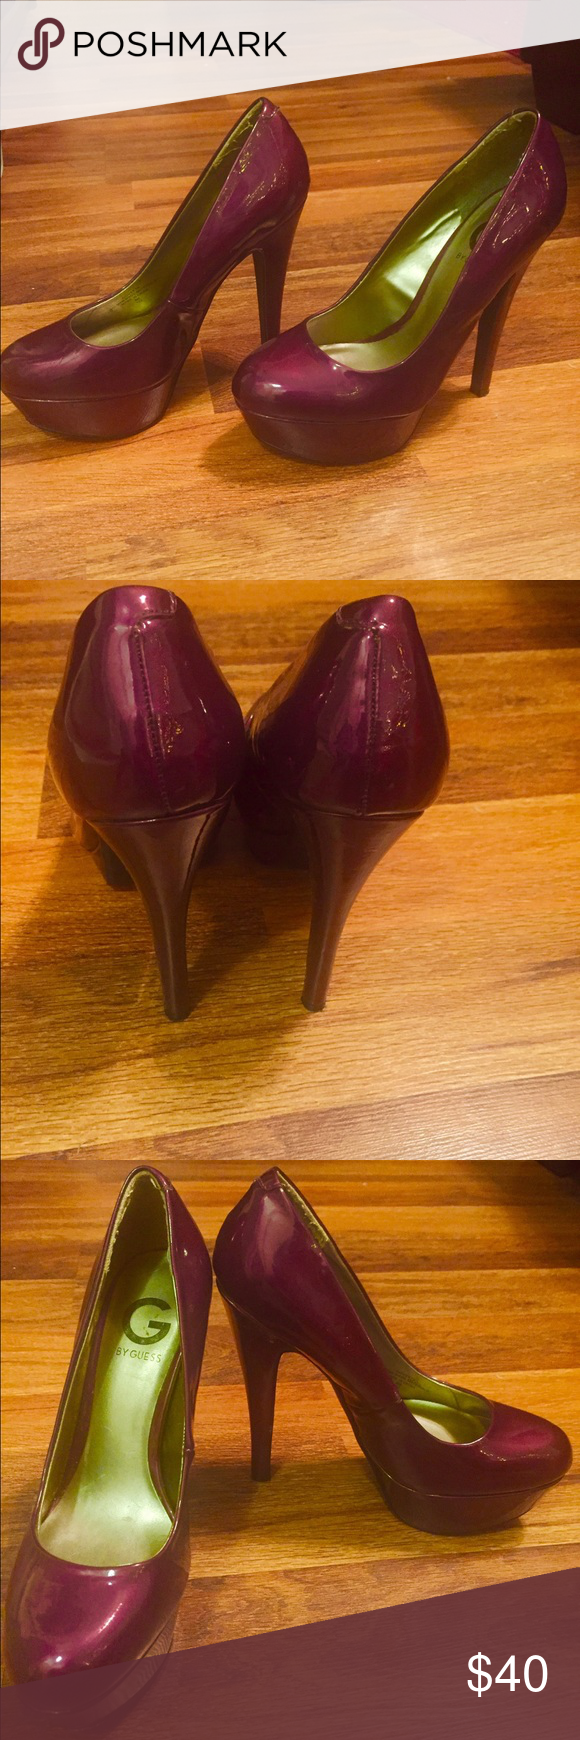 Guess Platform Heels These heels by Guess are shiny and perfect for a night on the town! In excellent condition. Guess Shoes Heels